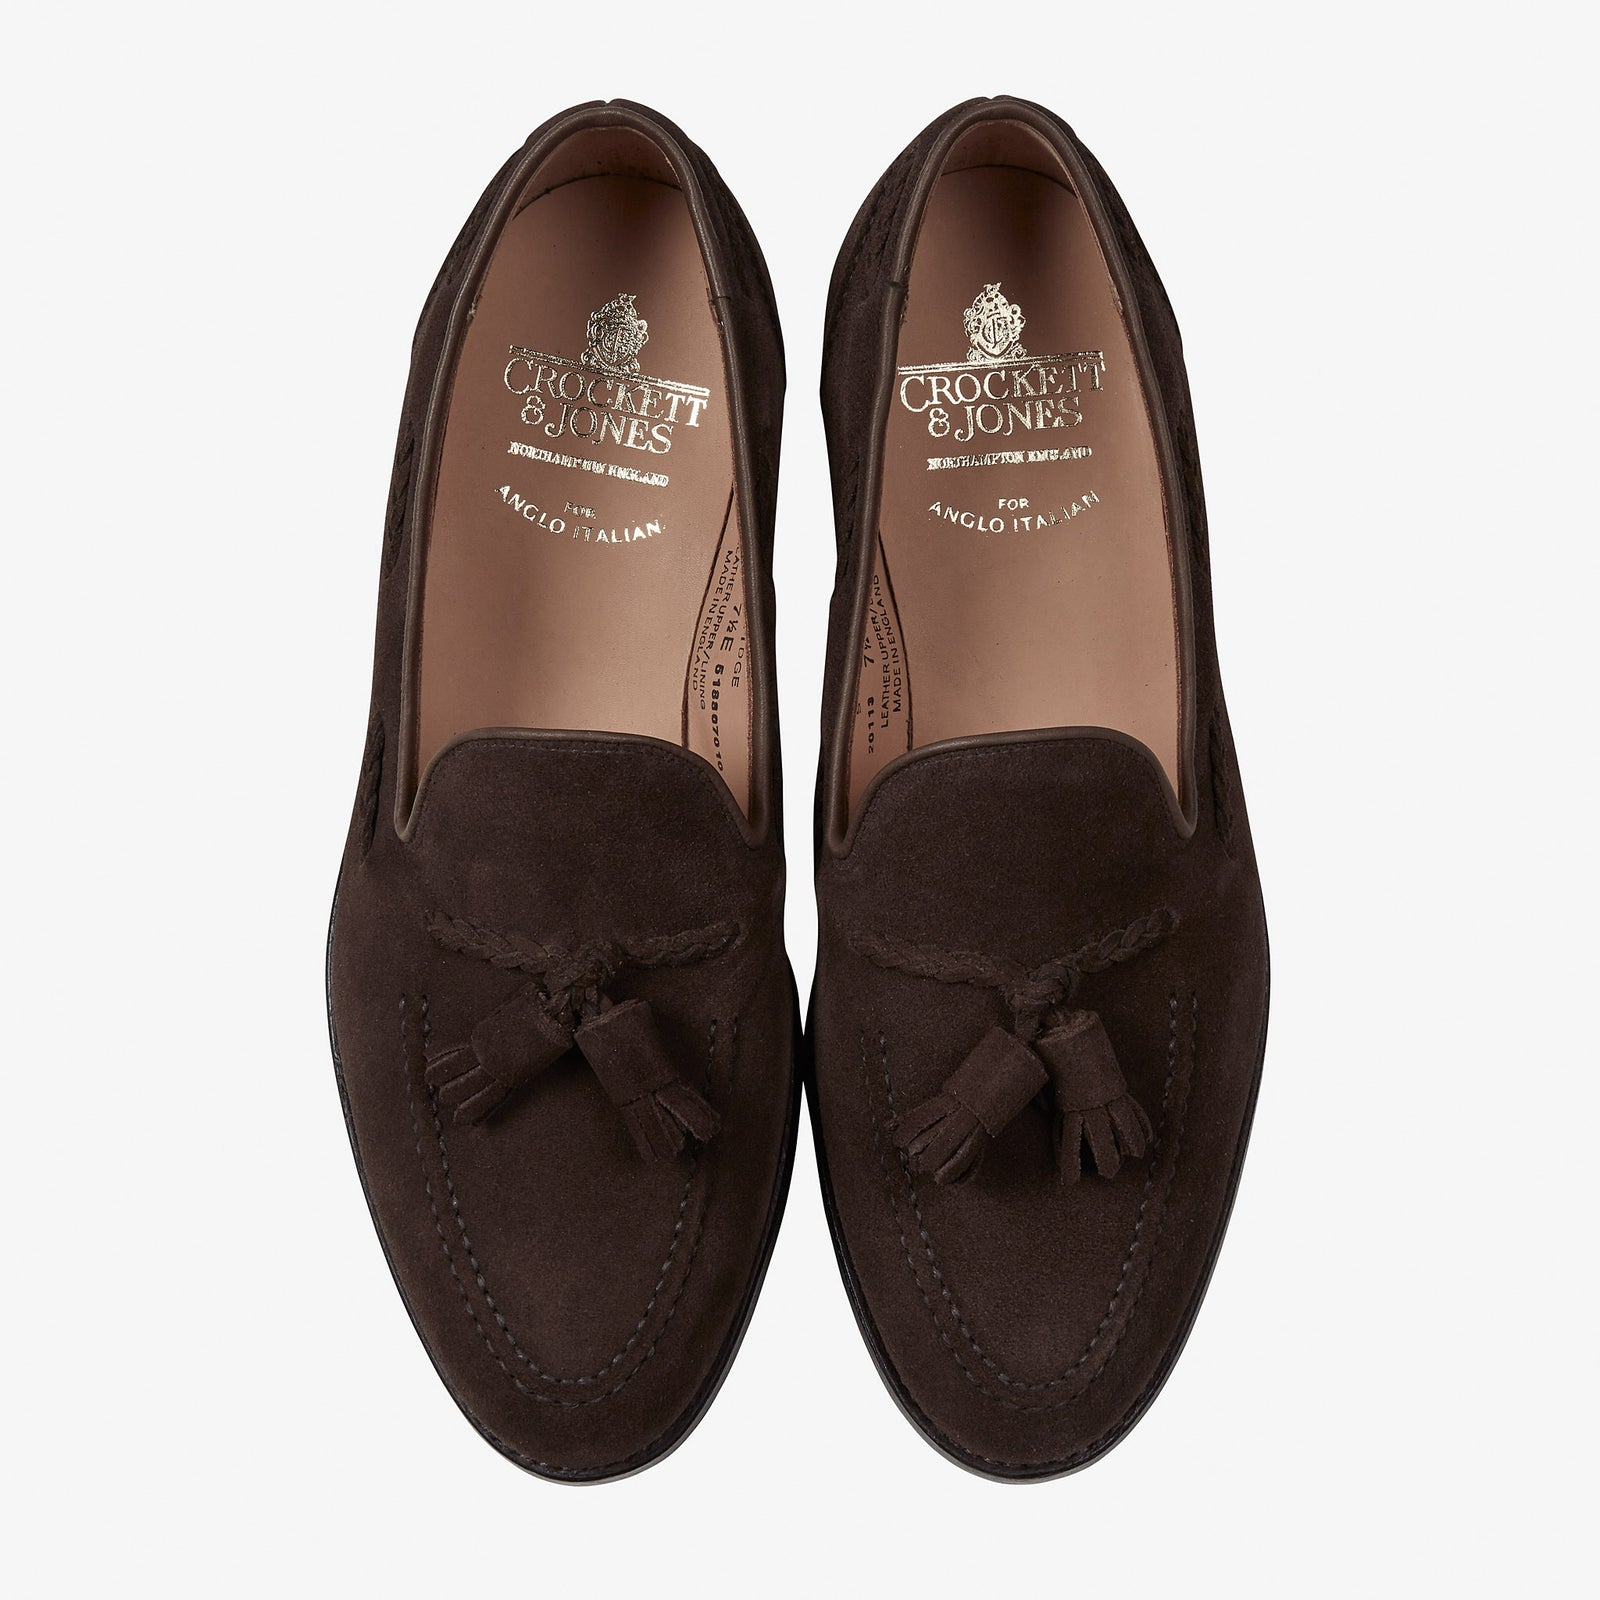 Crockett & Jones for Anglo-Italian Studridge Loafer Dark Brown Suede